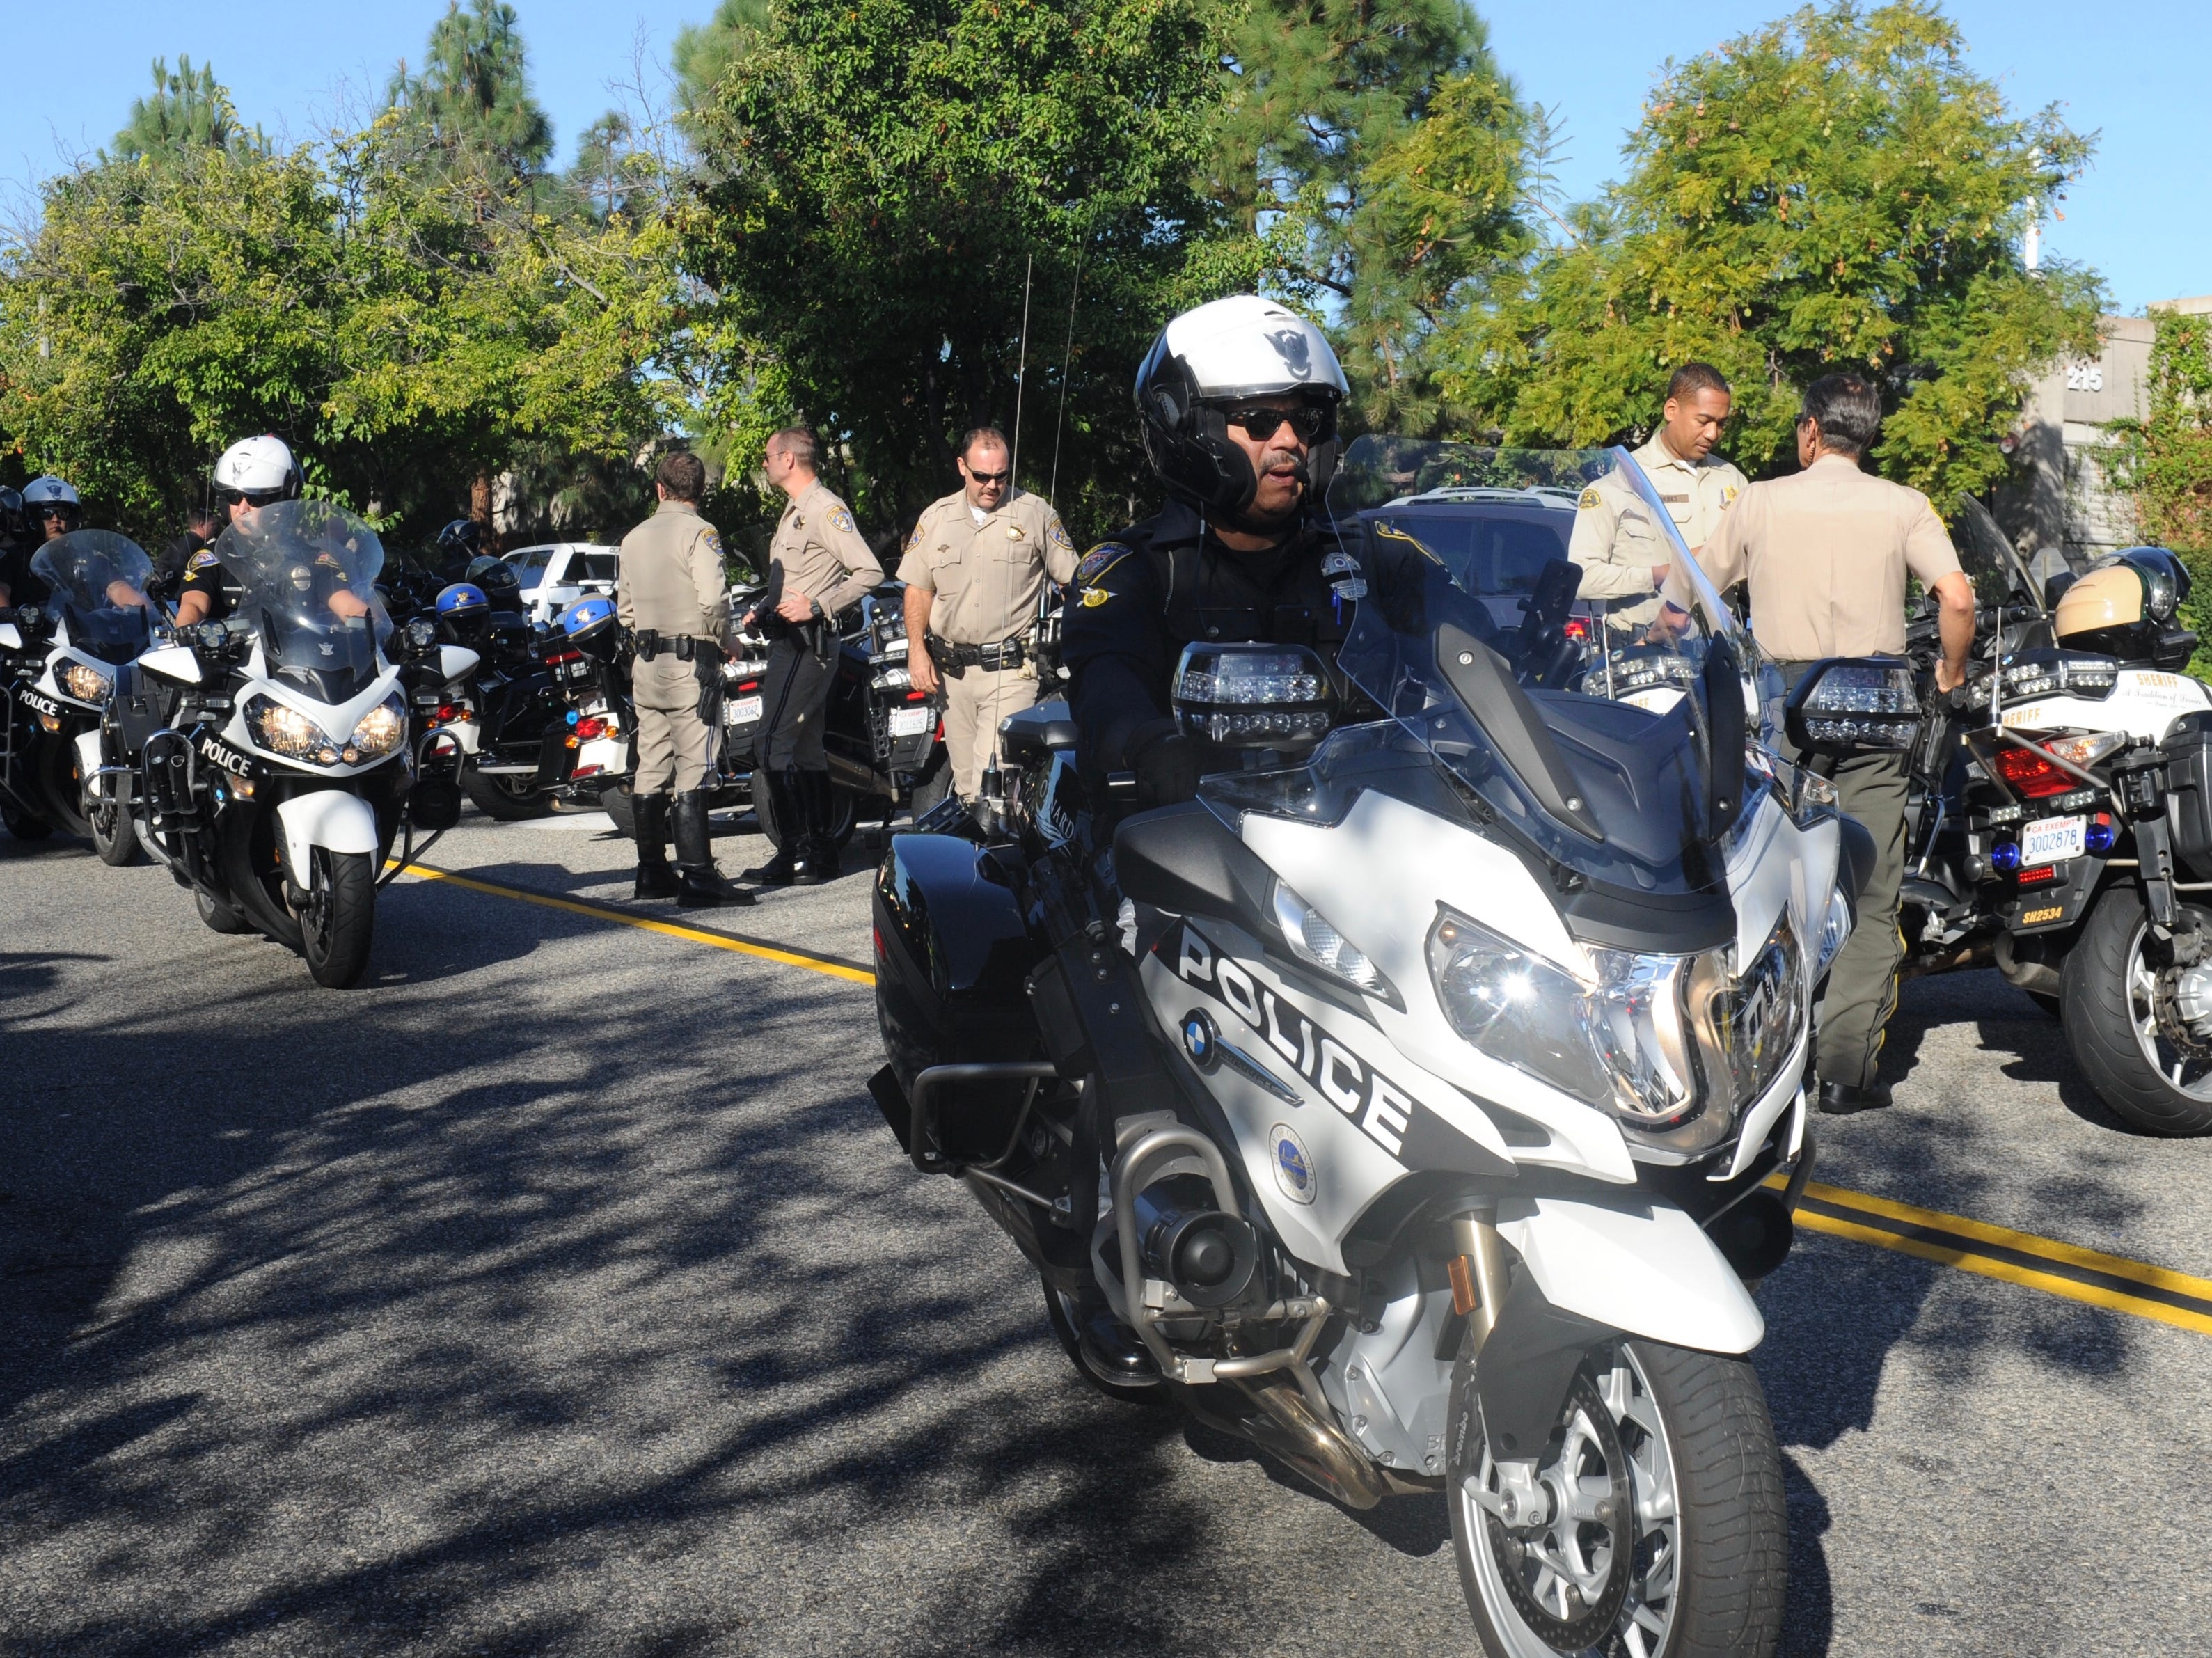 Dozens of motorcycle officers from around the region prepare for the procession of Sgt. Ron Helus' body from Los Robles Regional Medical Center Thursday morning.